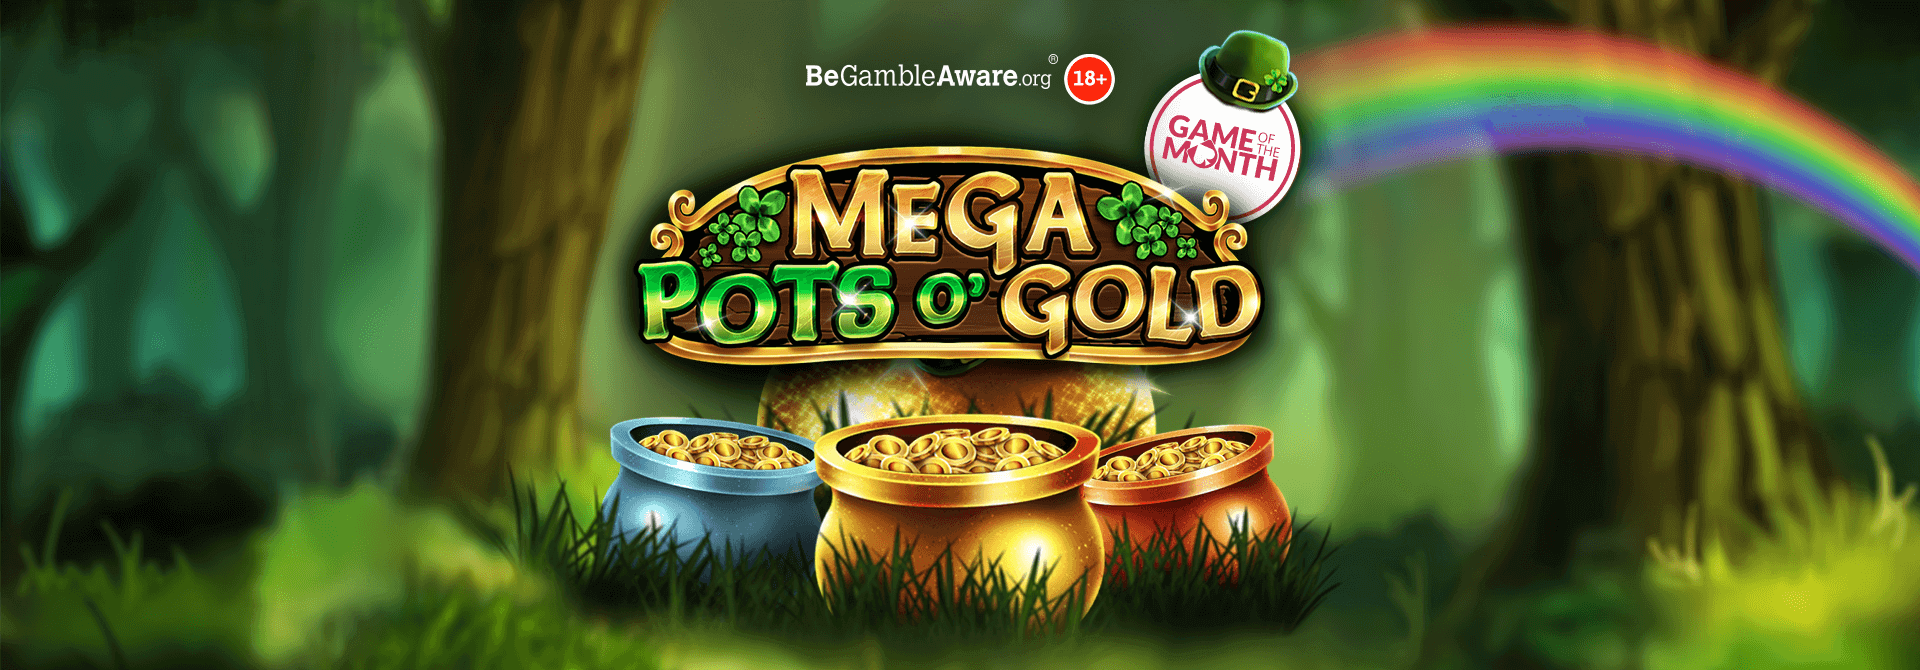 Prepare for a golden adventure in Mega Pots O' Gold online slots!